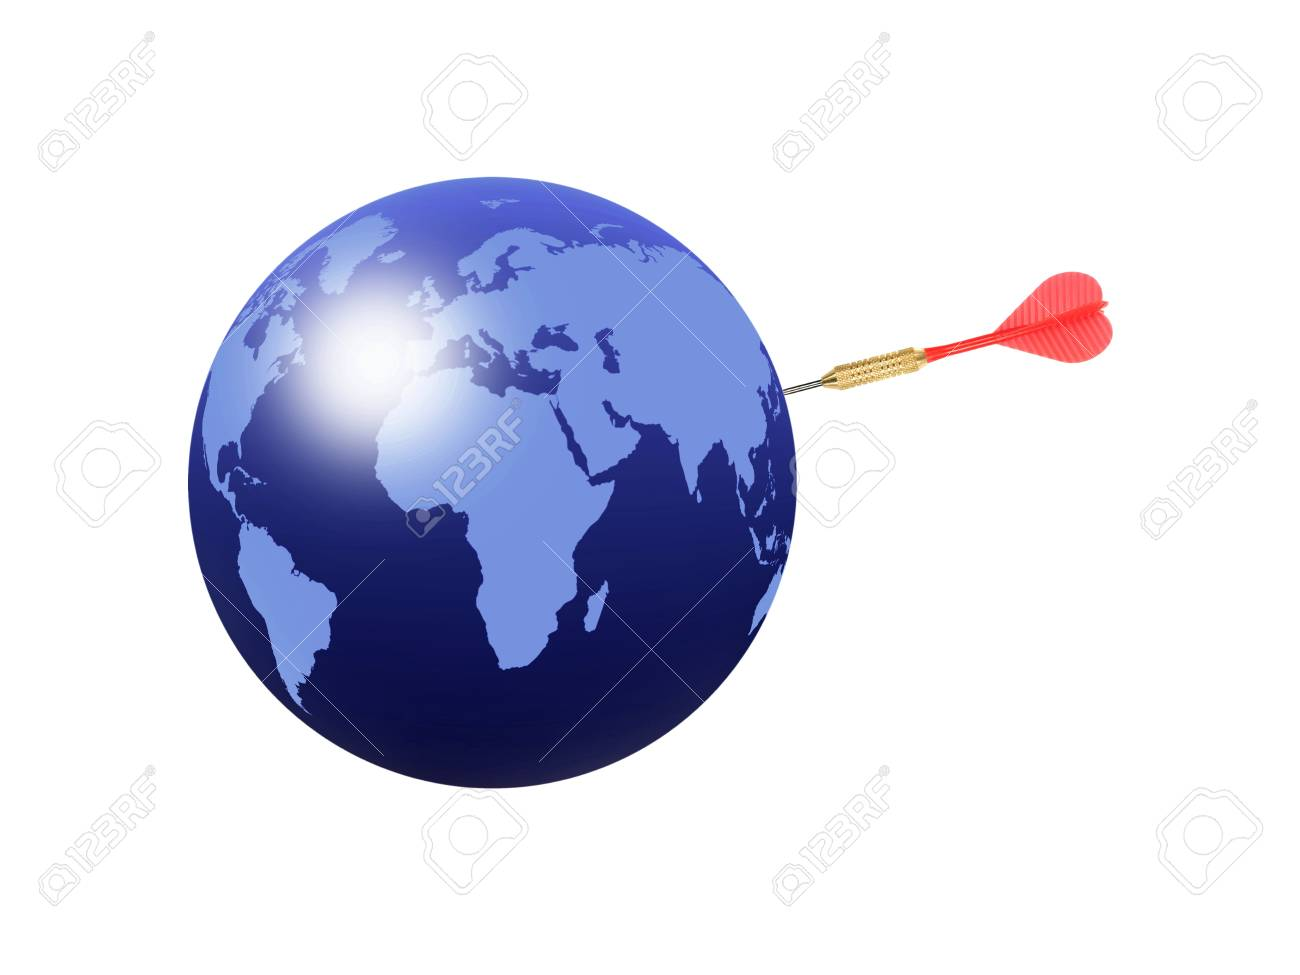 A creative world map abstract background file Stock Photo - 13540104